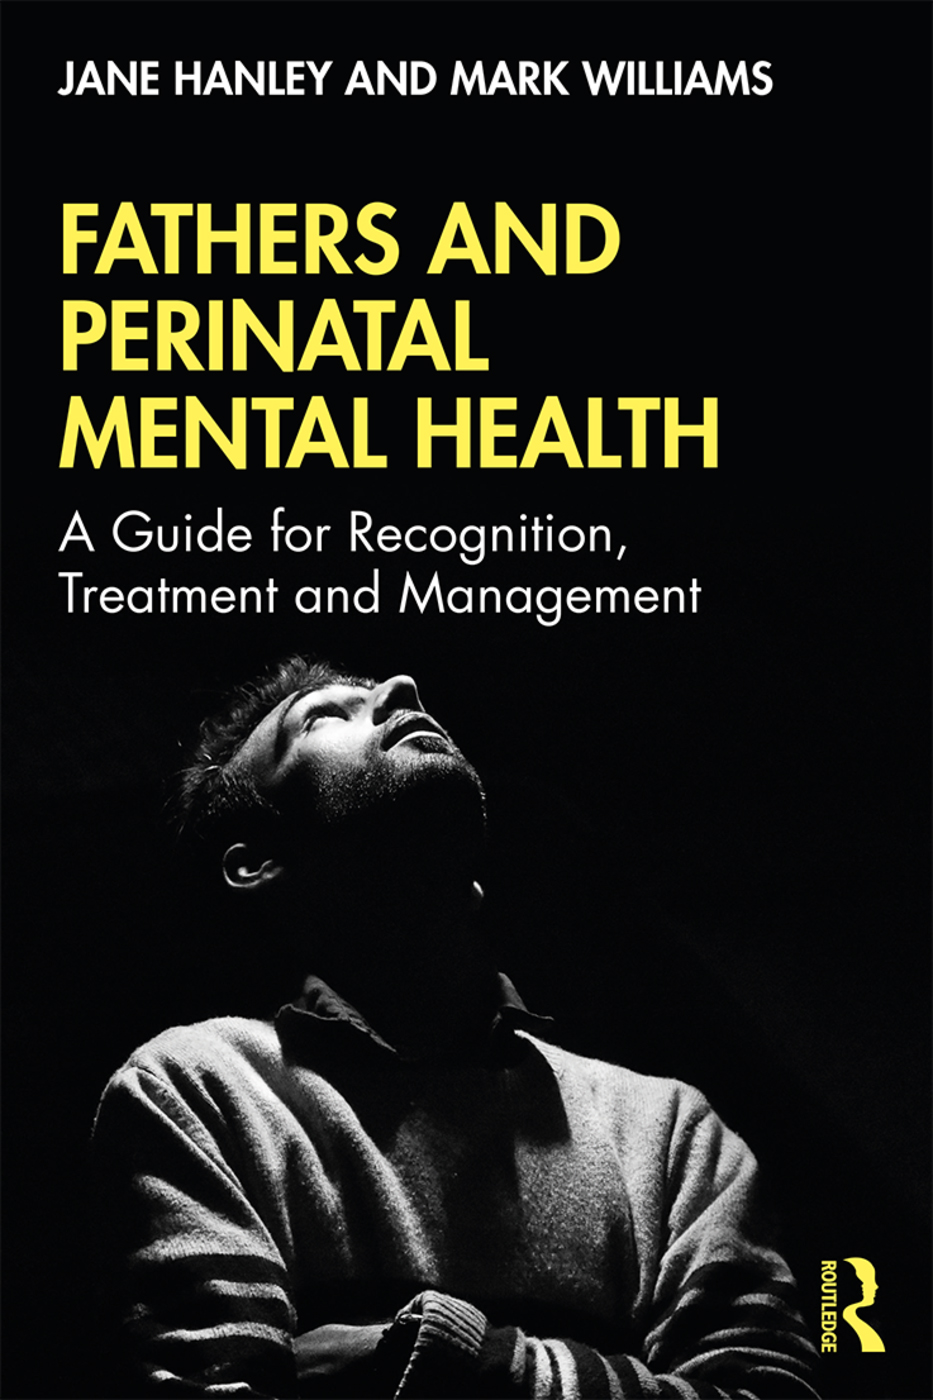 Fathers and Perinatal Mental Health: A Guide for Recognition, Treatment and Management book cover